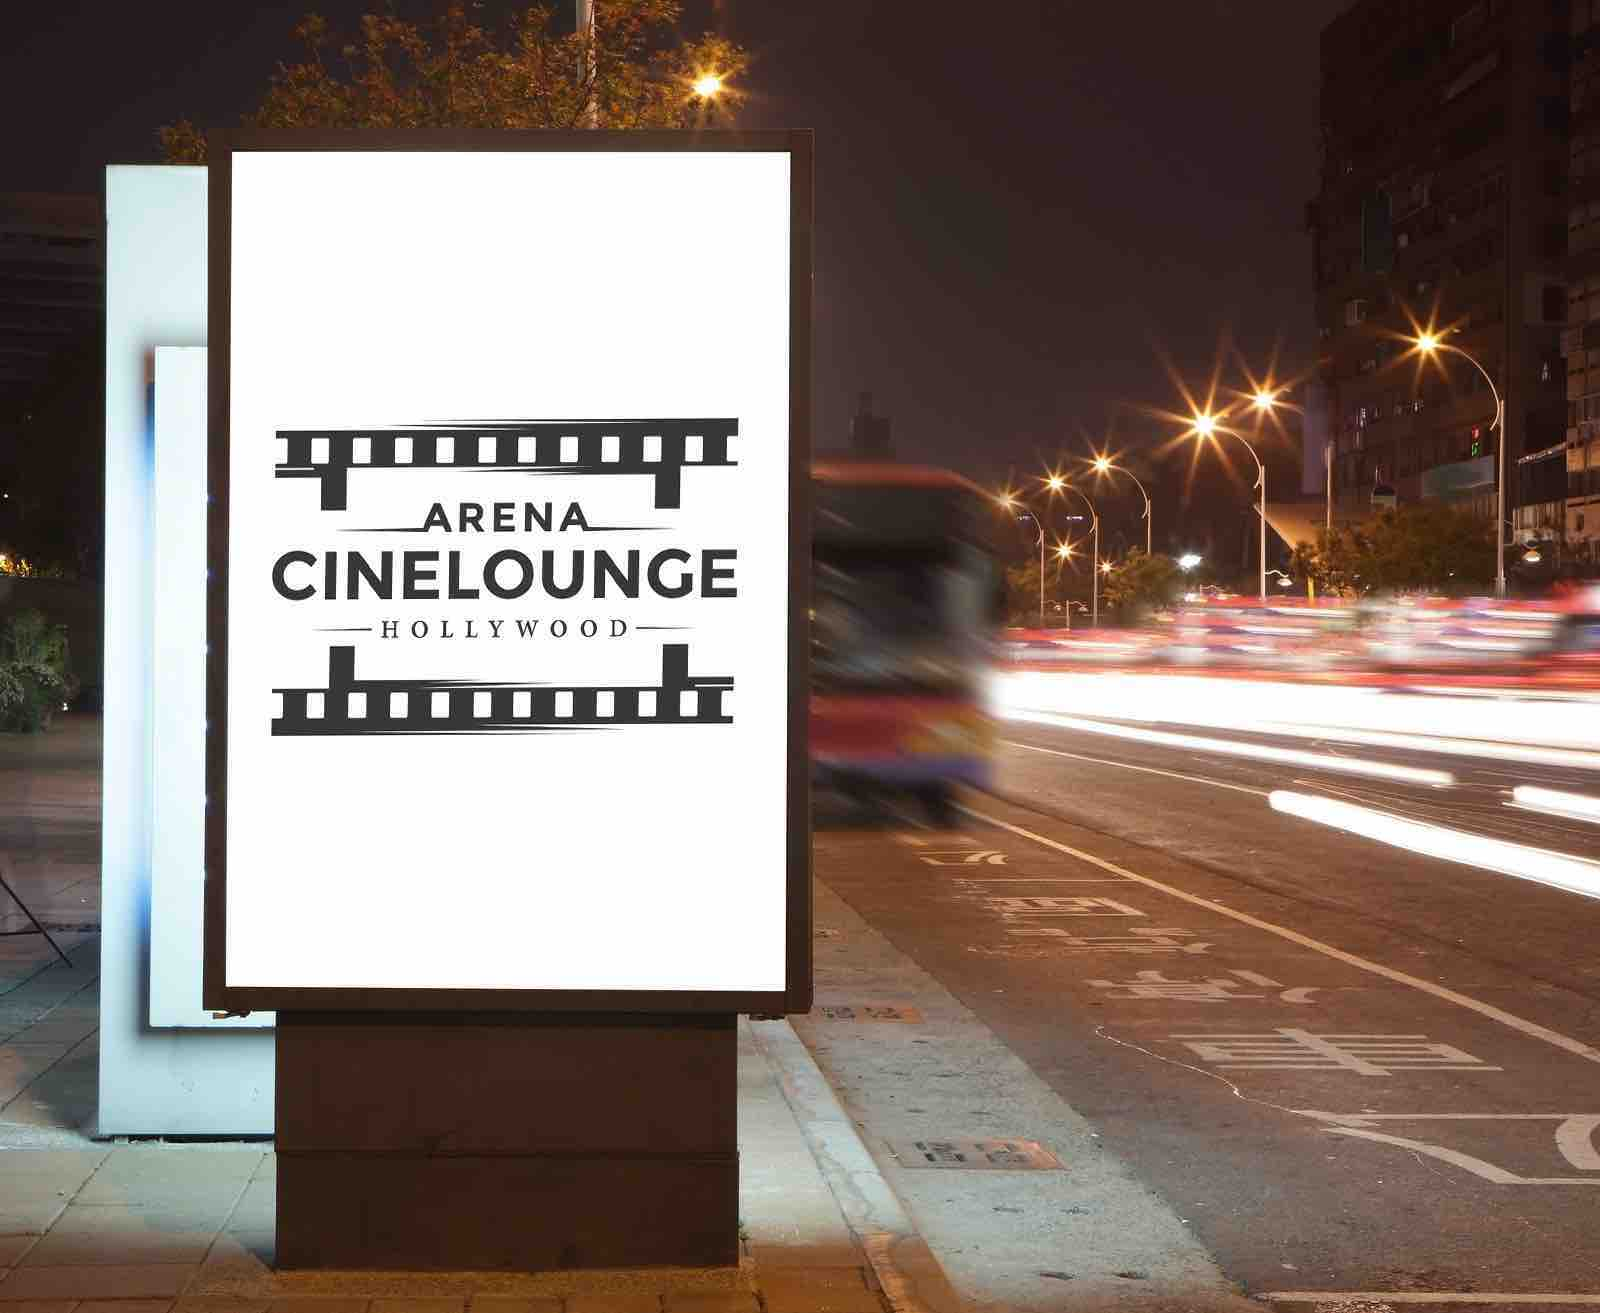 Arena Cinelounge Sunset | Theatre News 2017 | Movies | Live Acting